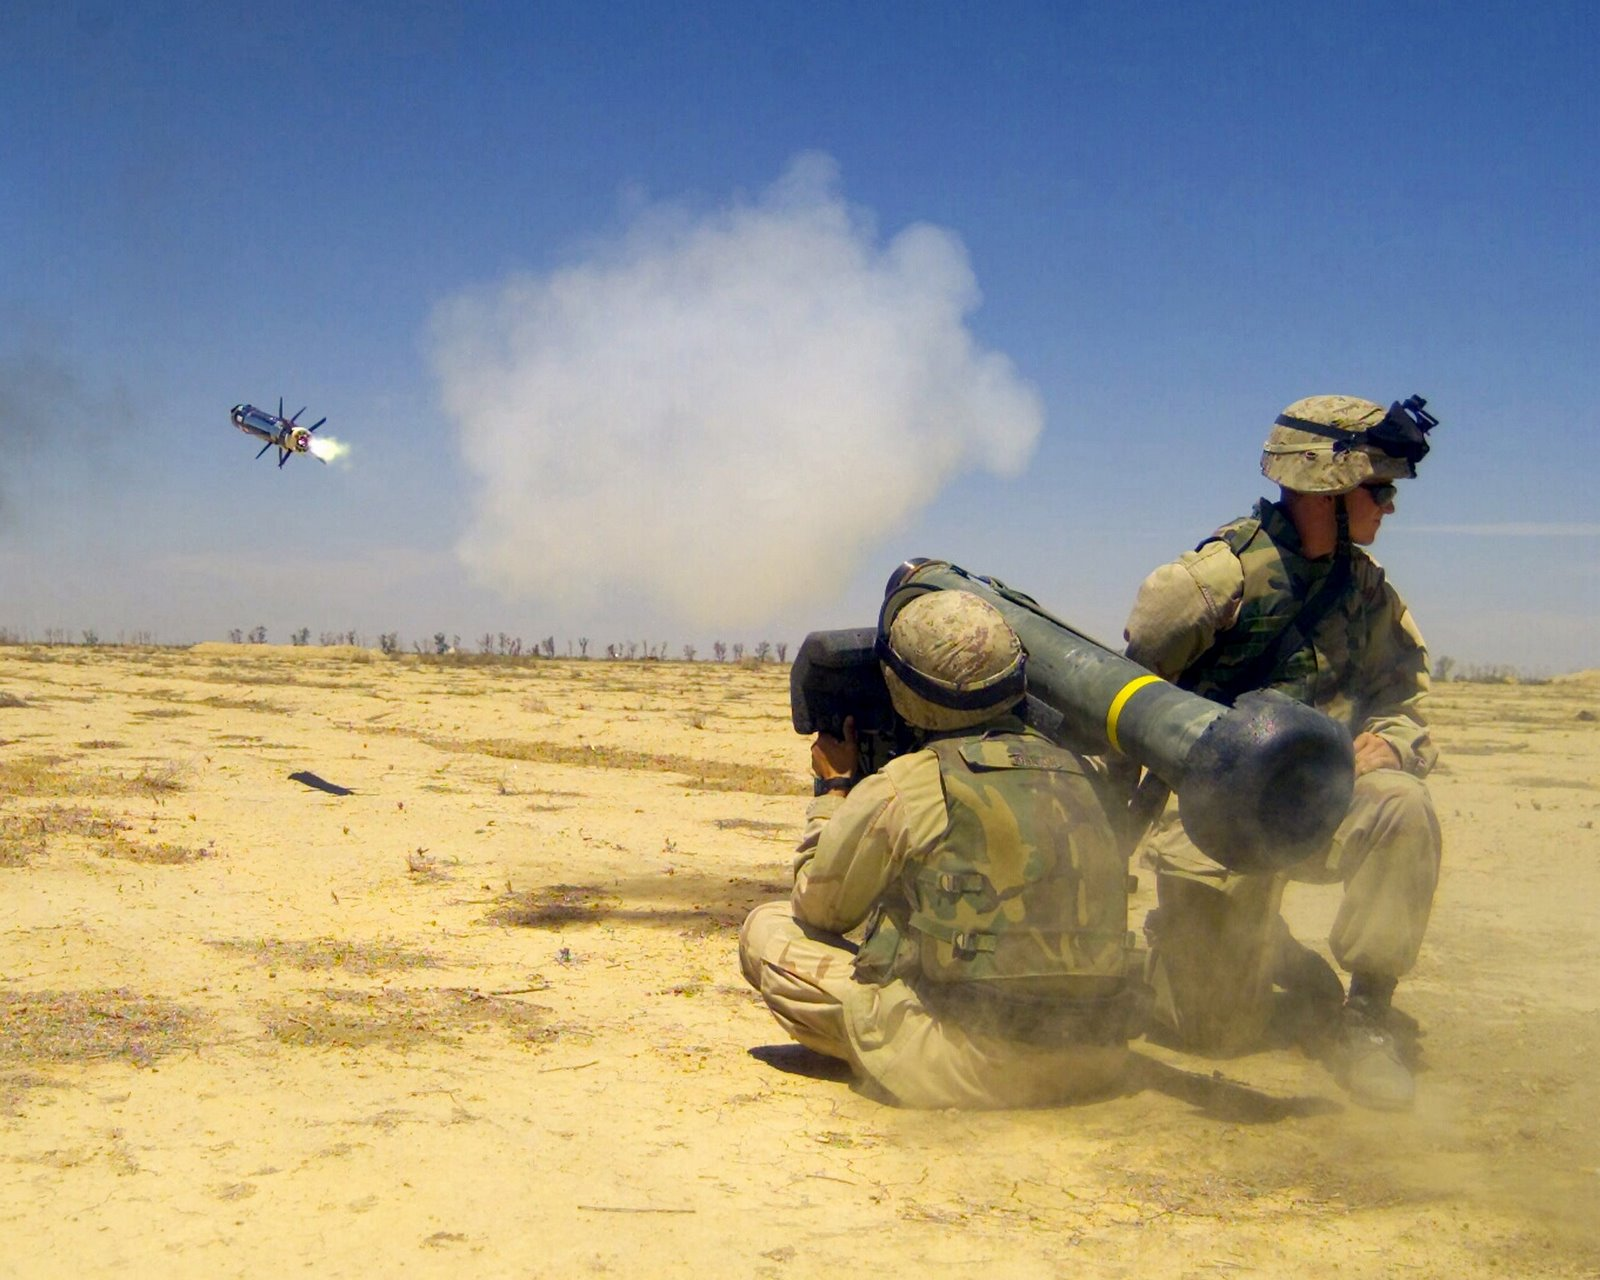 Javelin Demonstrates Extended Range Capability in Recent Tests ...